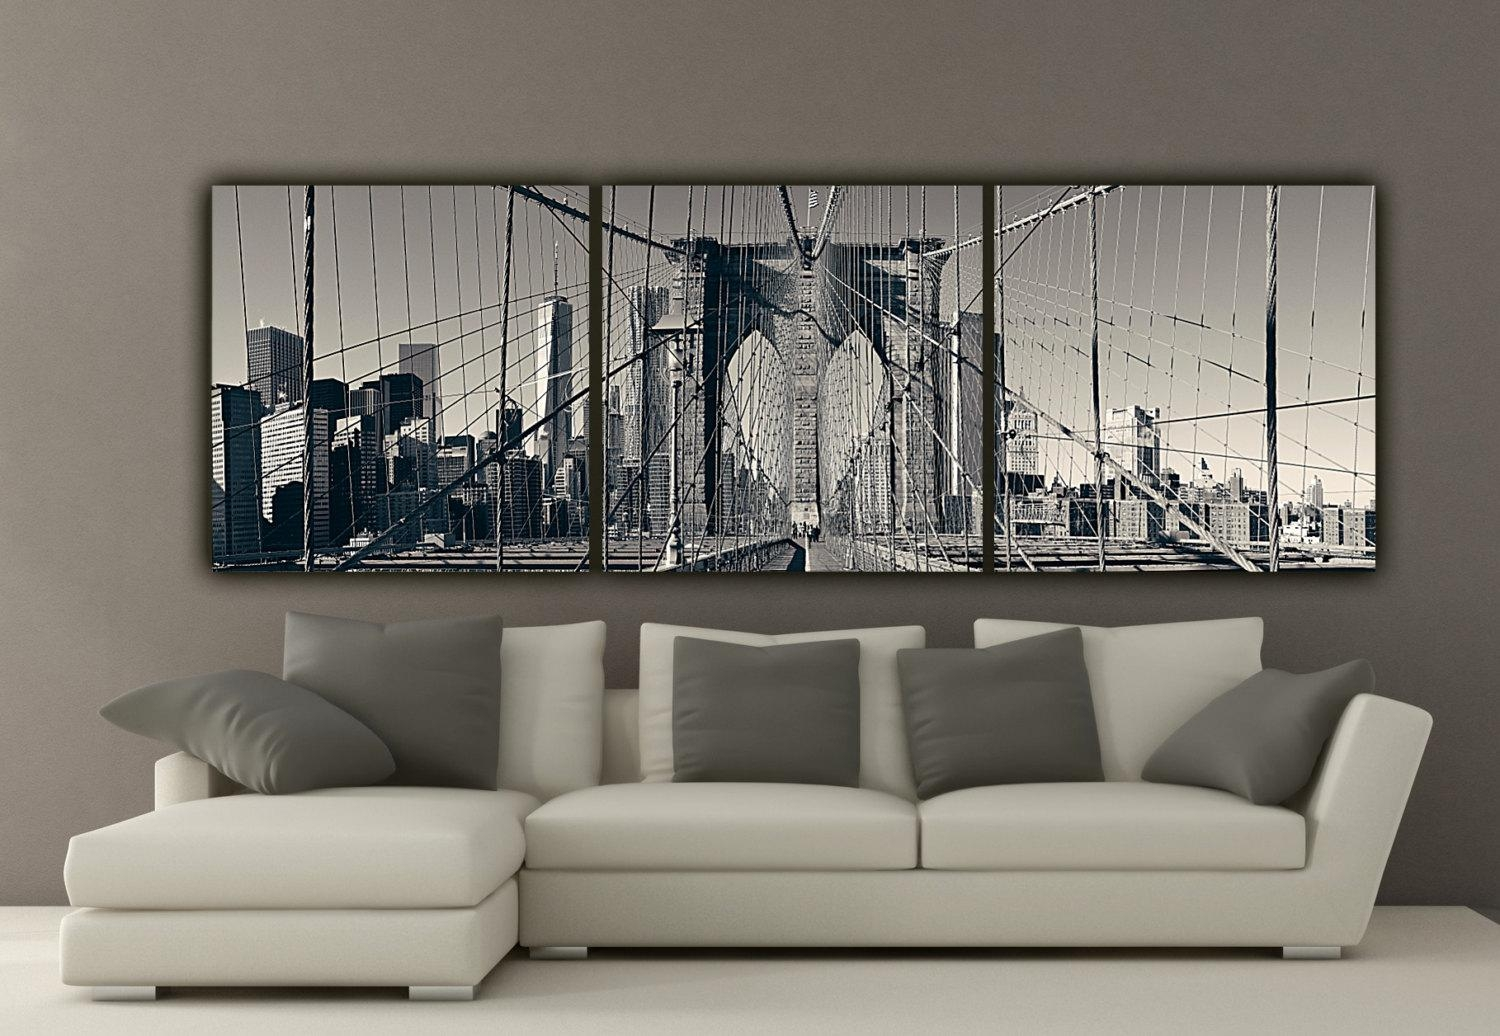 New York Brooklyn Bridge Canvas Wall Art Black And White New Intended For New York City Wall Art (View 3 of 20)